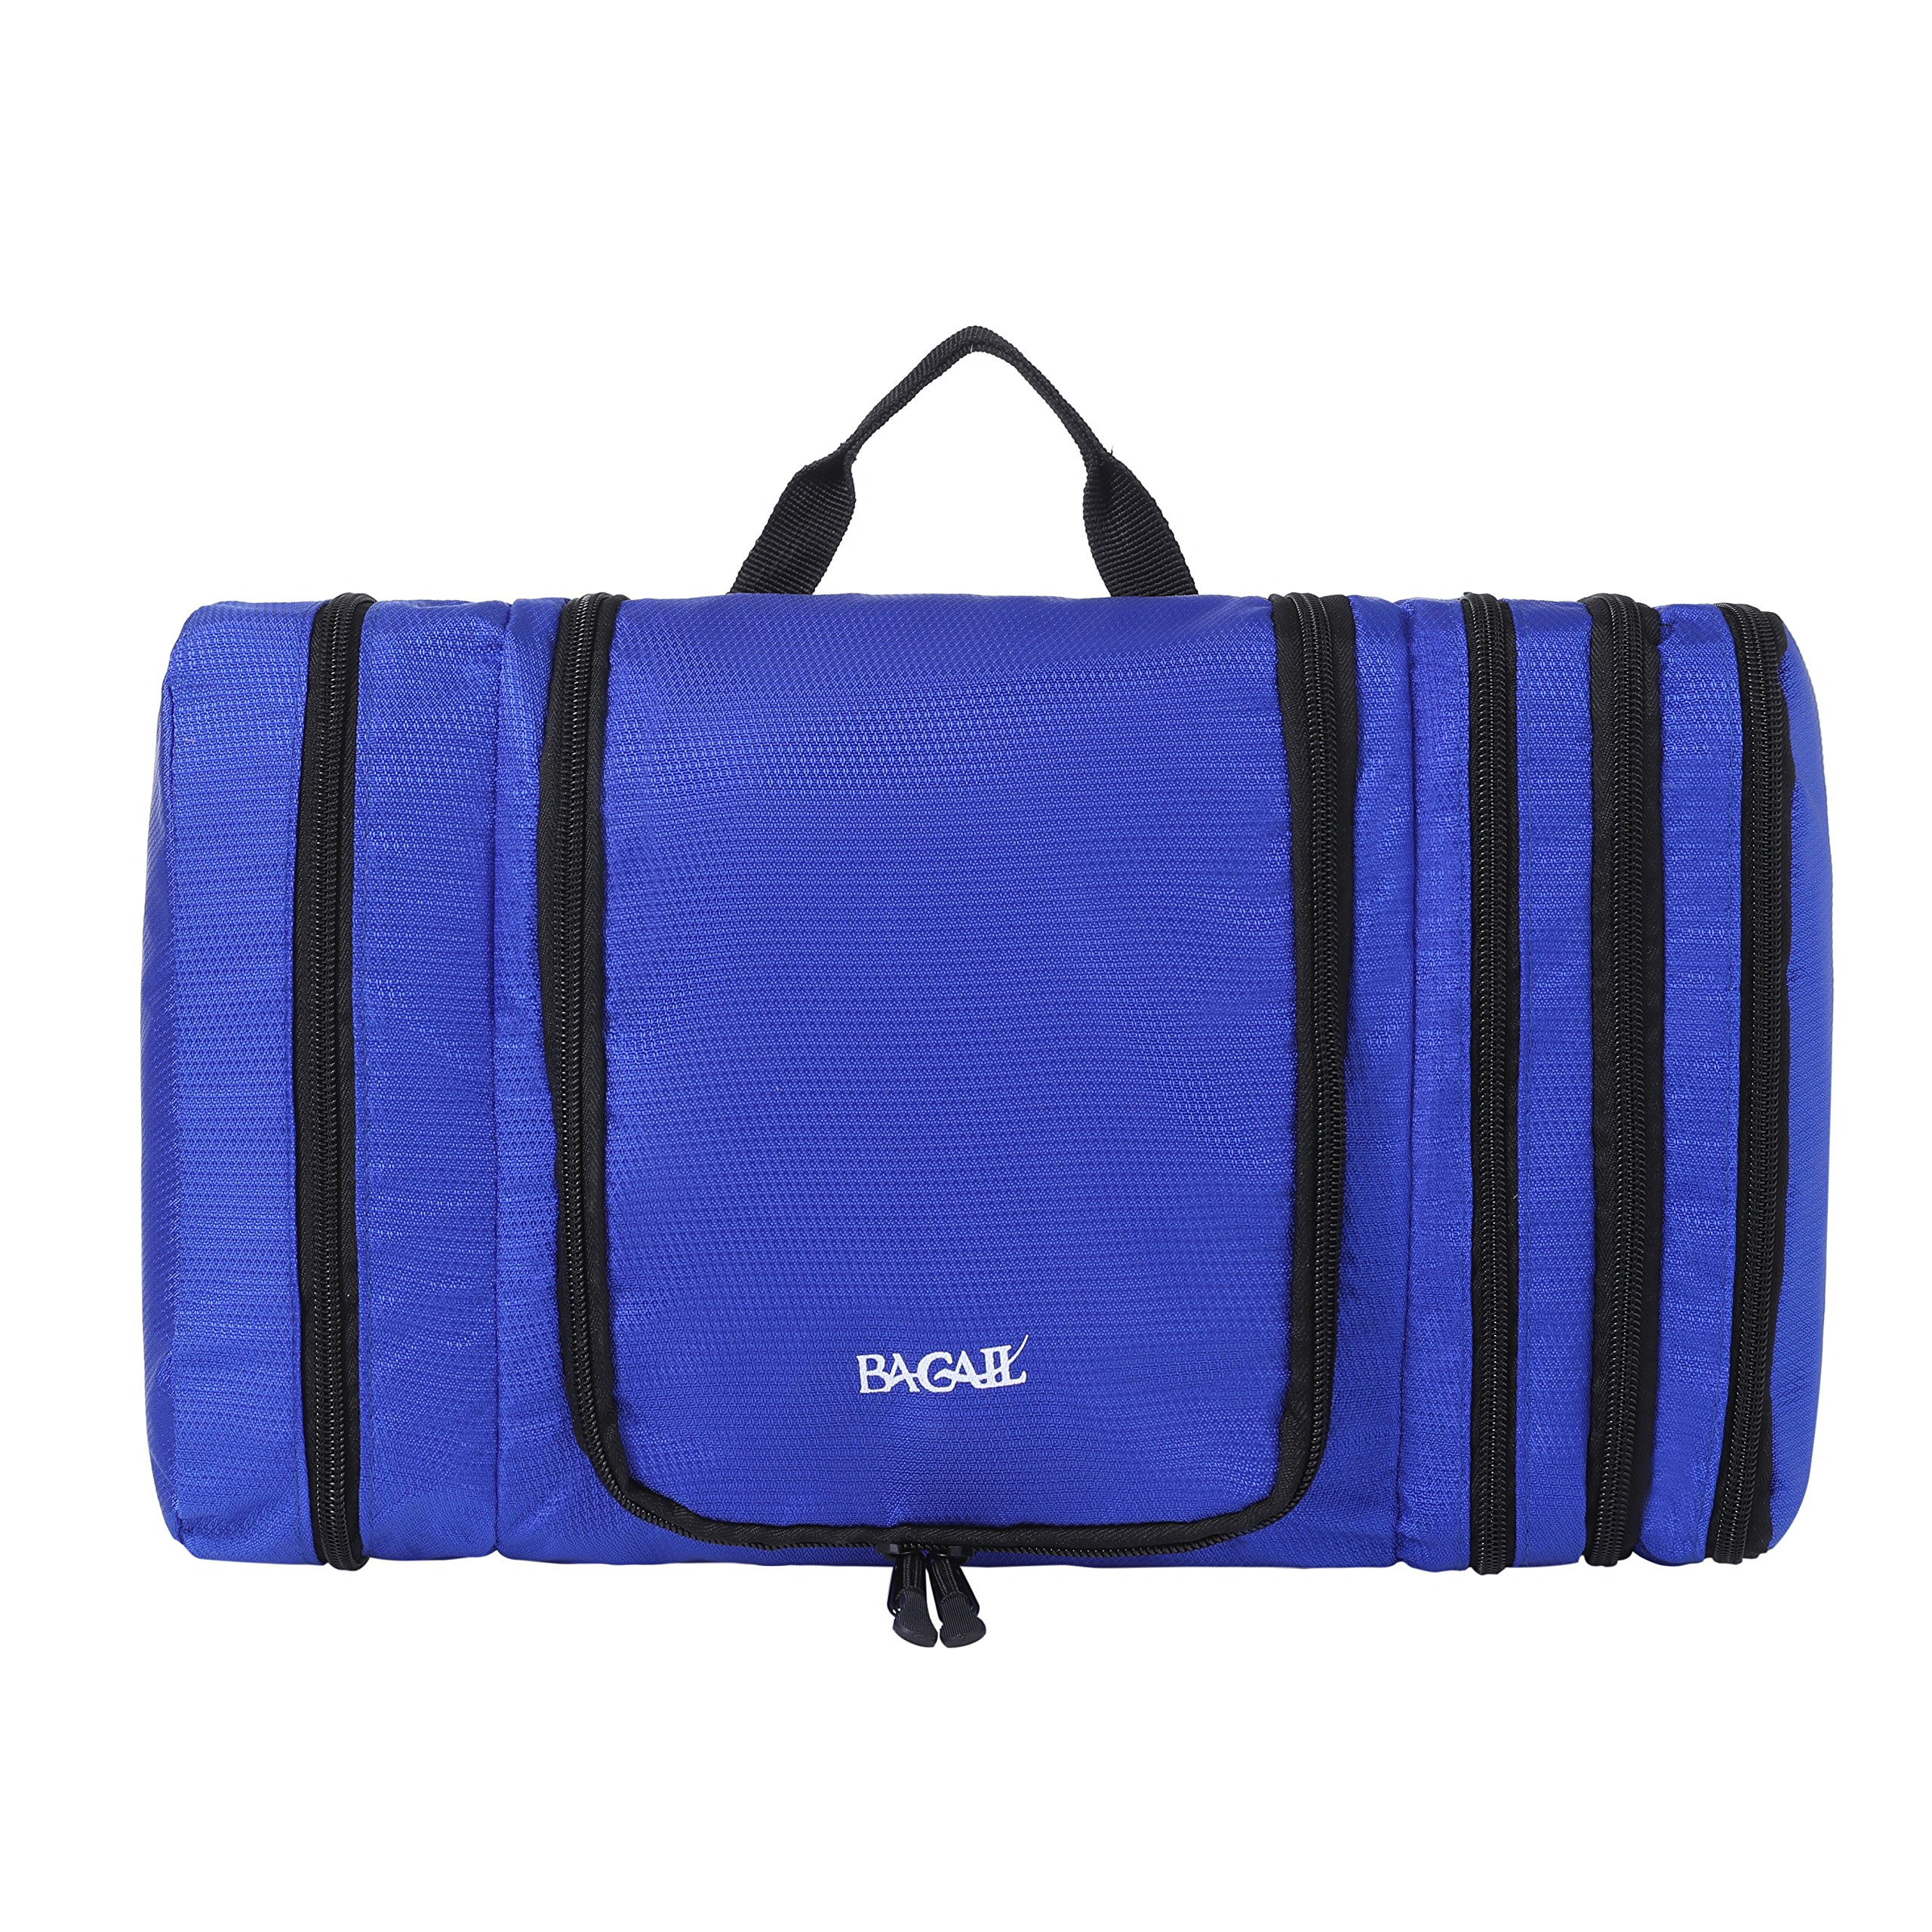 Bagail Men & Women Waterproof Flat Toiletry Kit, Portable and Spacious Travel Cosmetic Organizer Bag for Travel Accessories,Personal Items, Makeup and Shaving Dark Blue